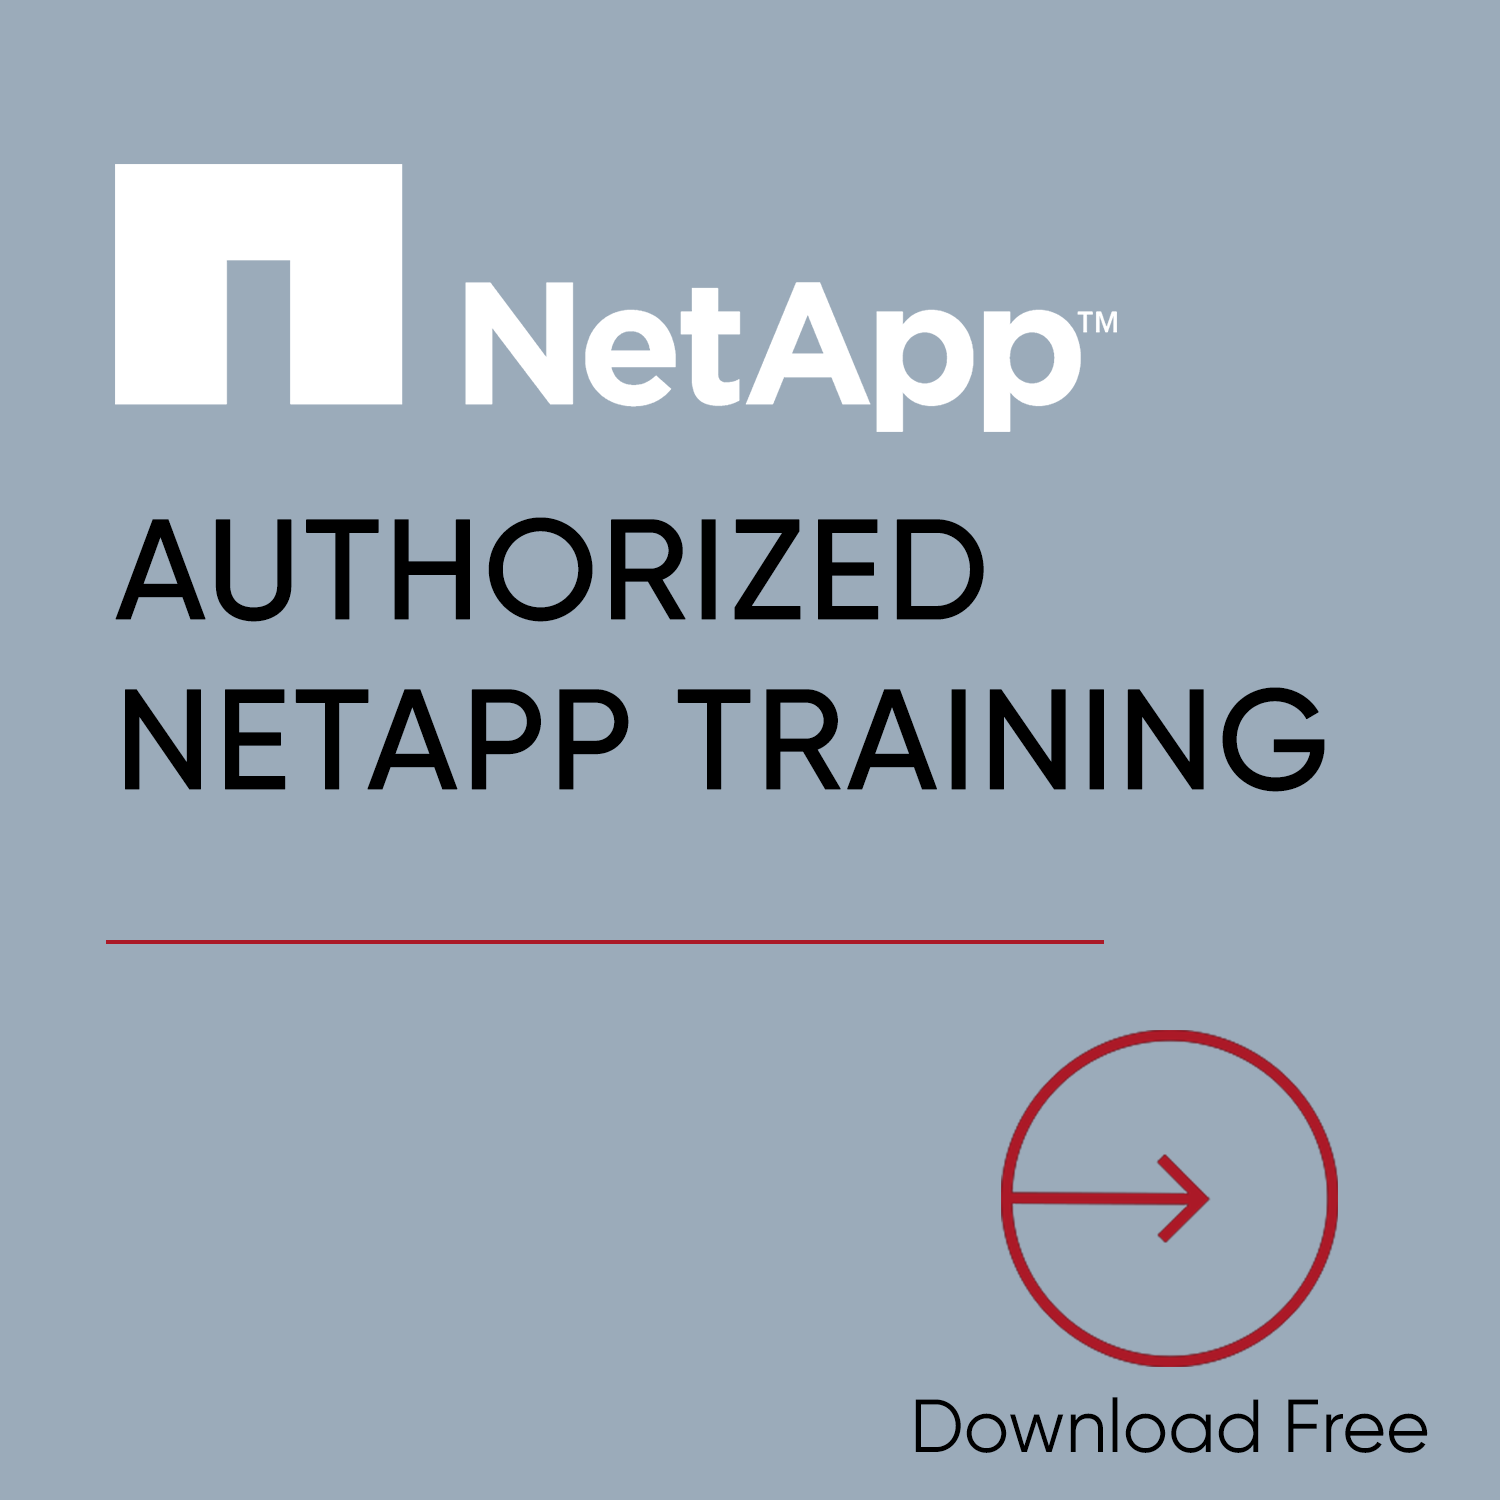 Authorized NetApp Training